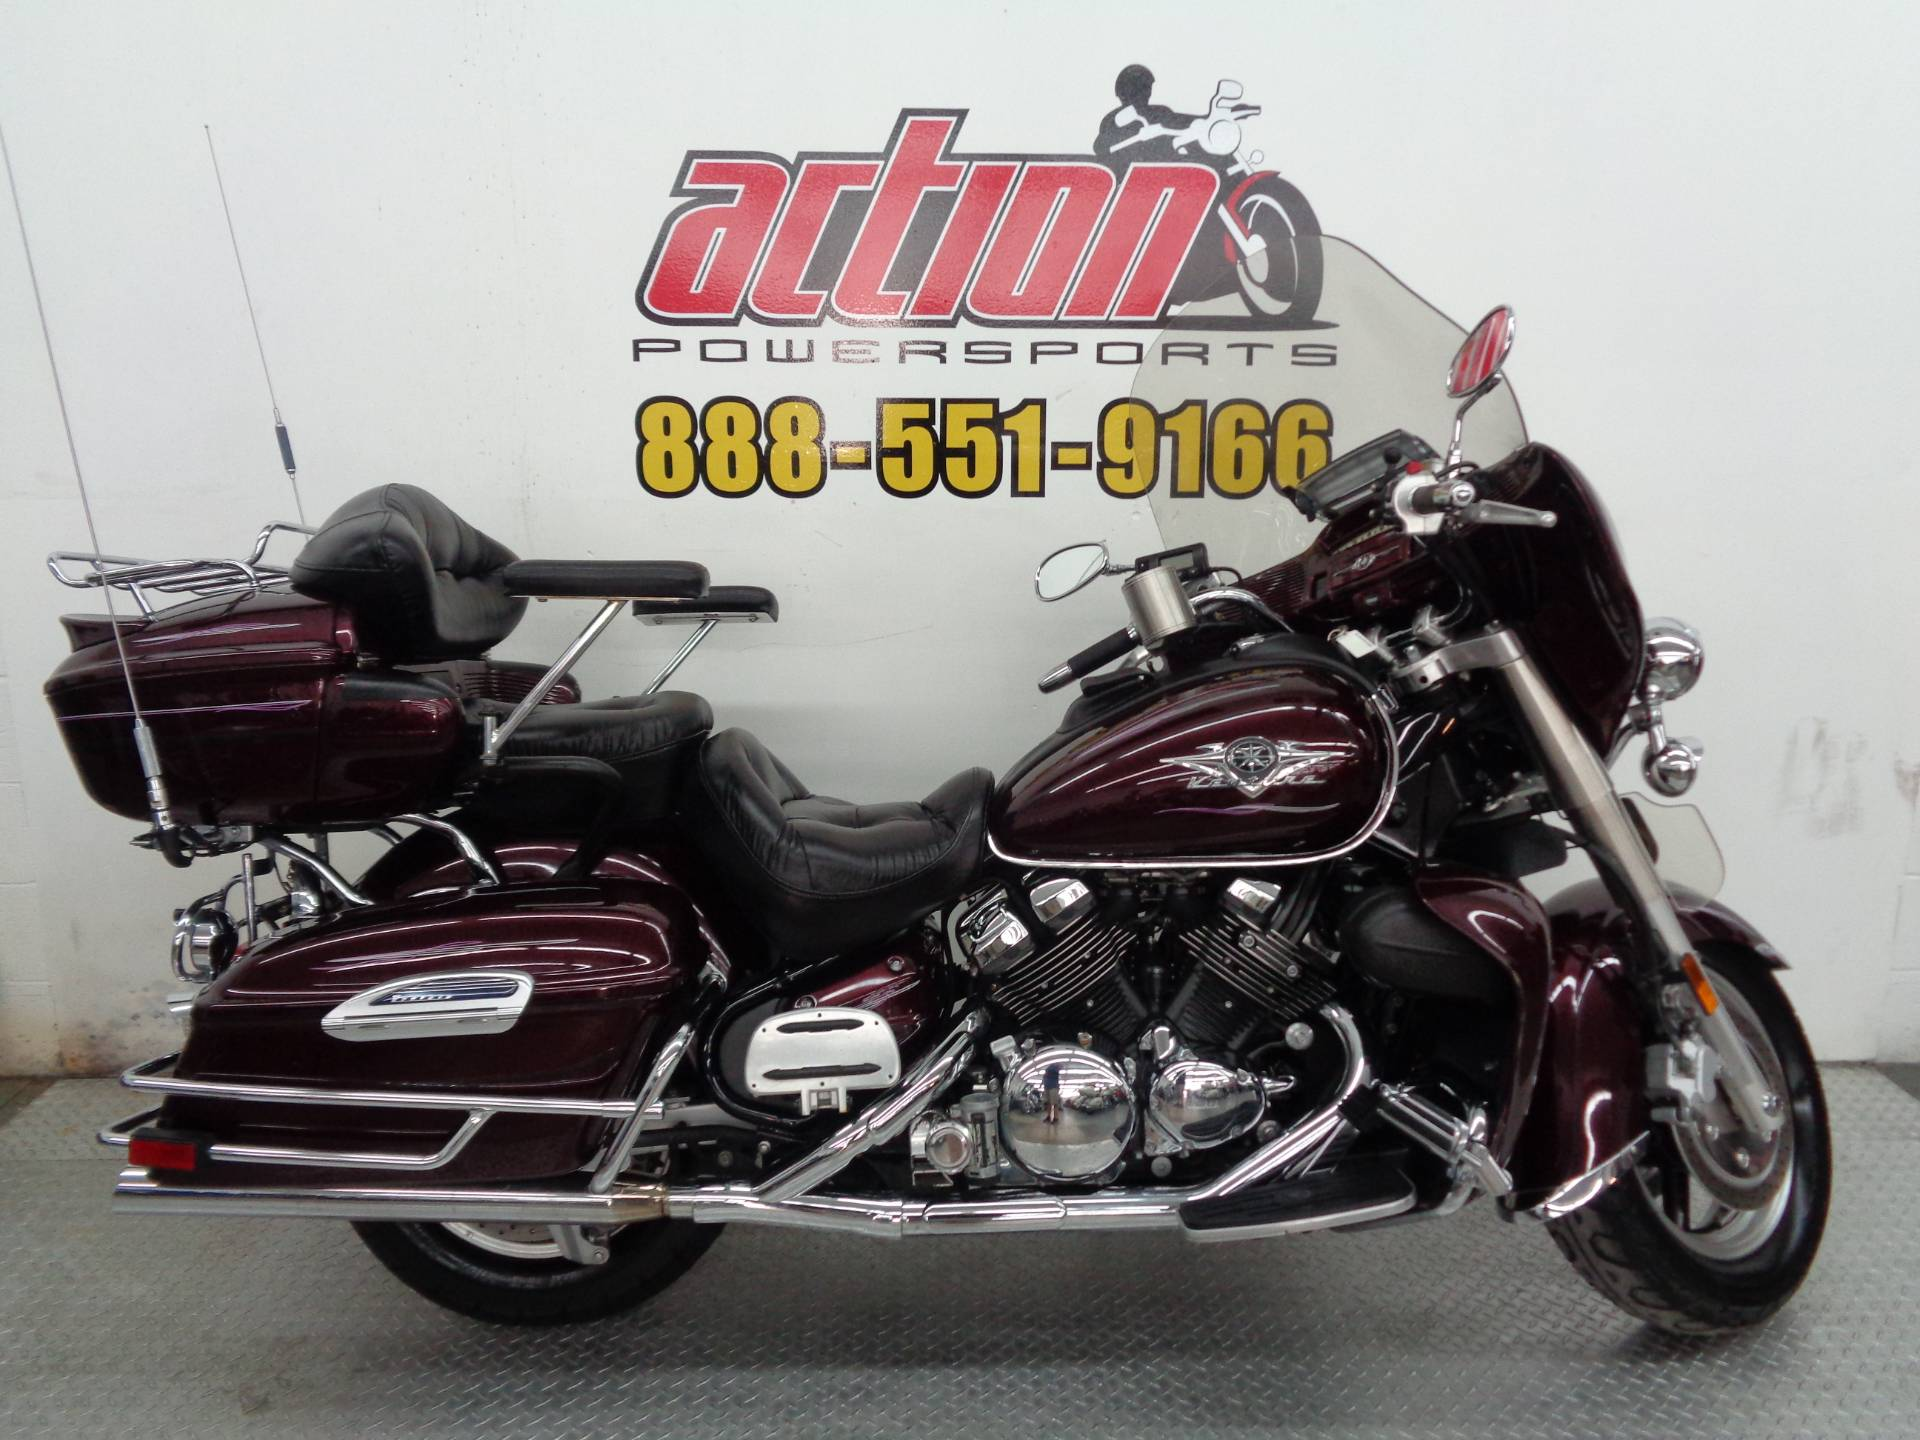 2006 Yamaha Royal Star Venture for sale 192